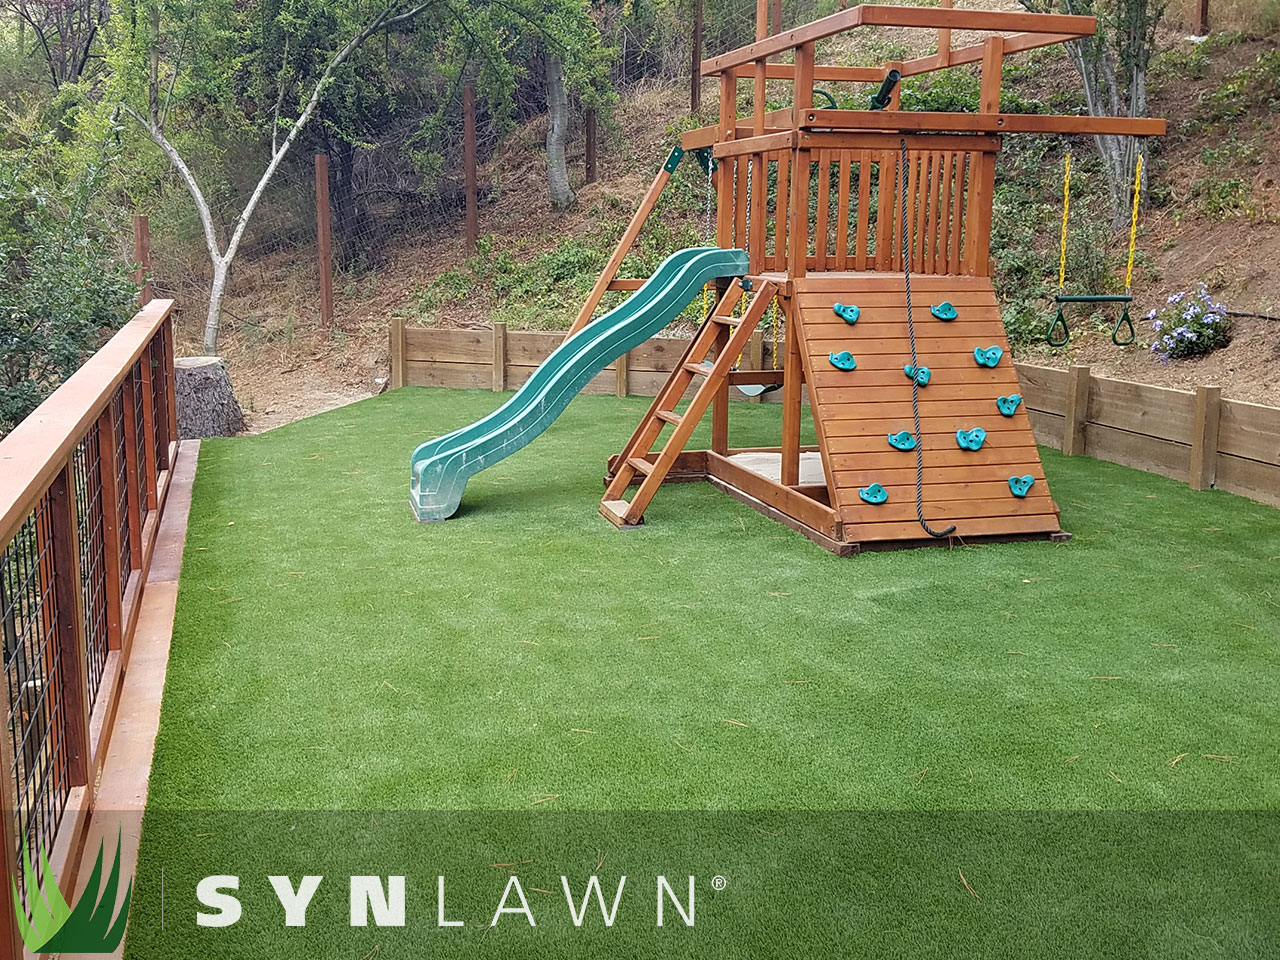 SYNLawn Playground Photo 6